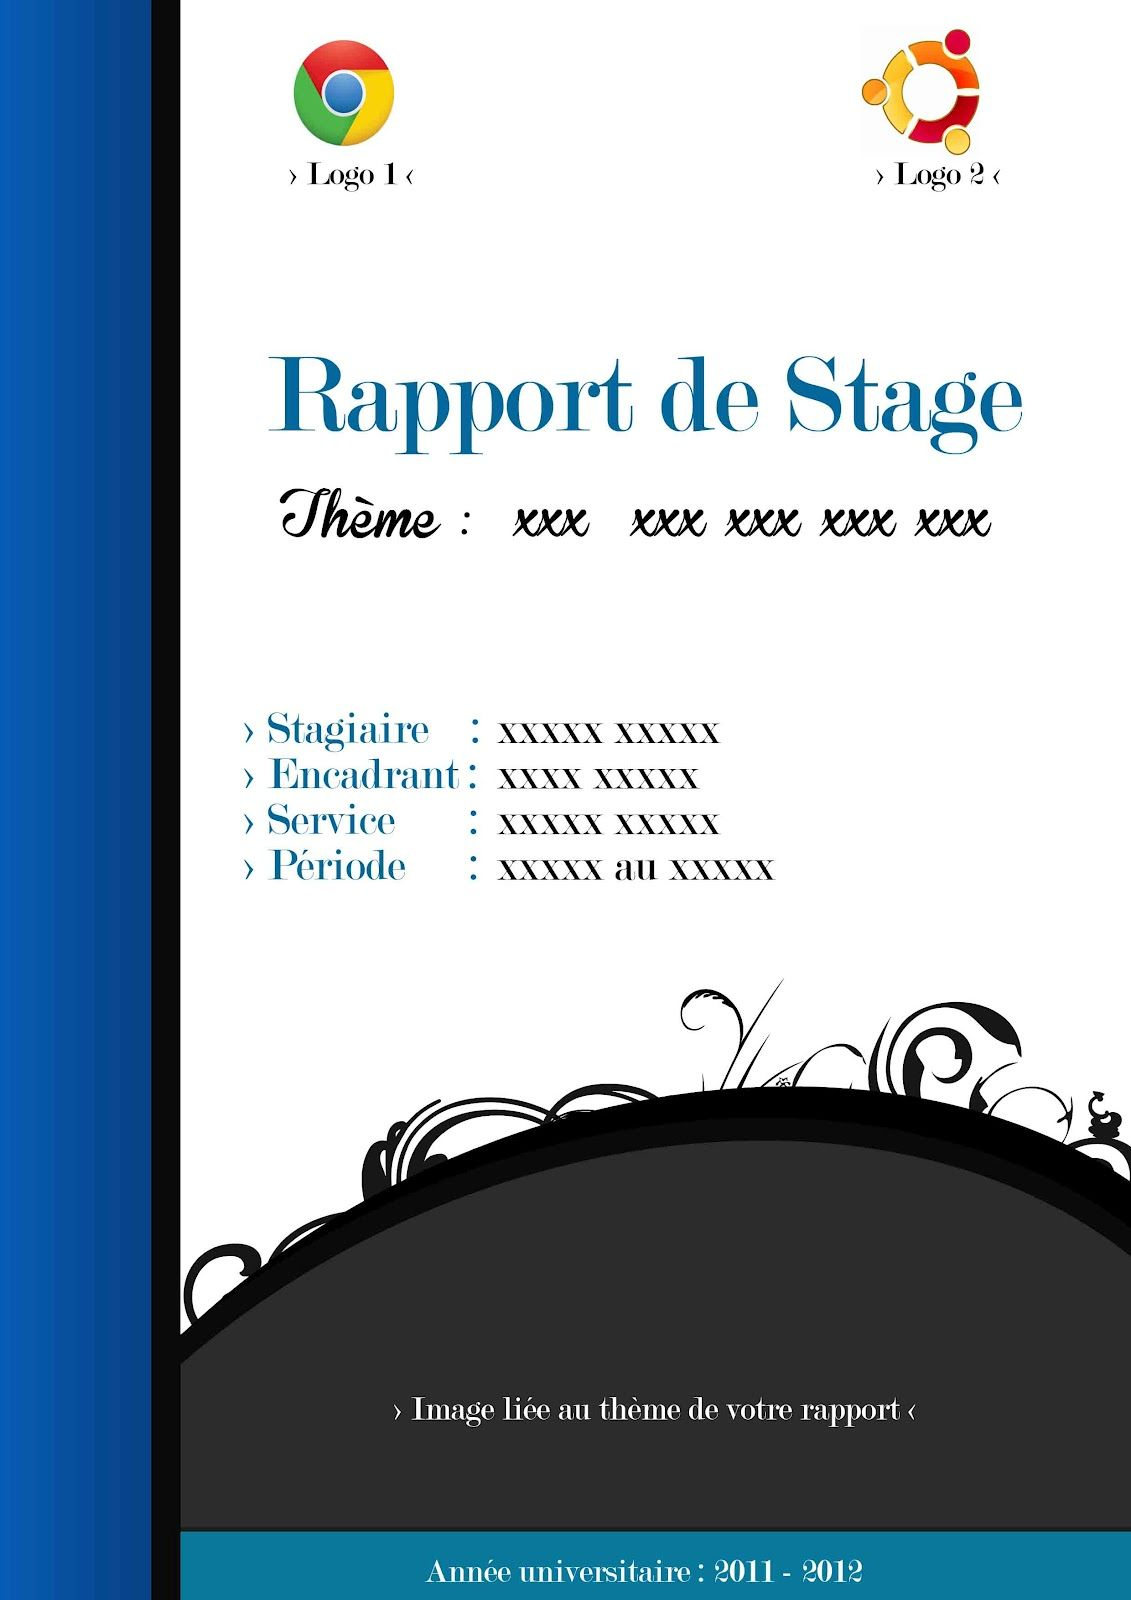 Exemple De Rapport De Stage A Telecharger Gratuitement